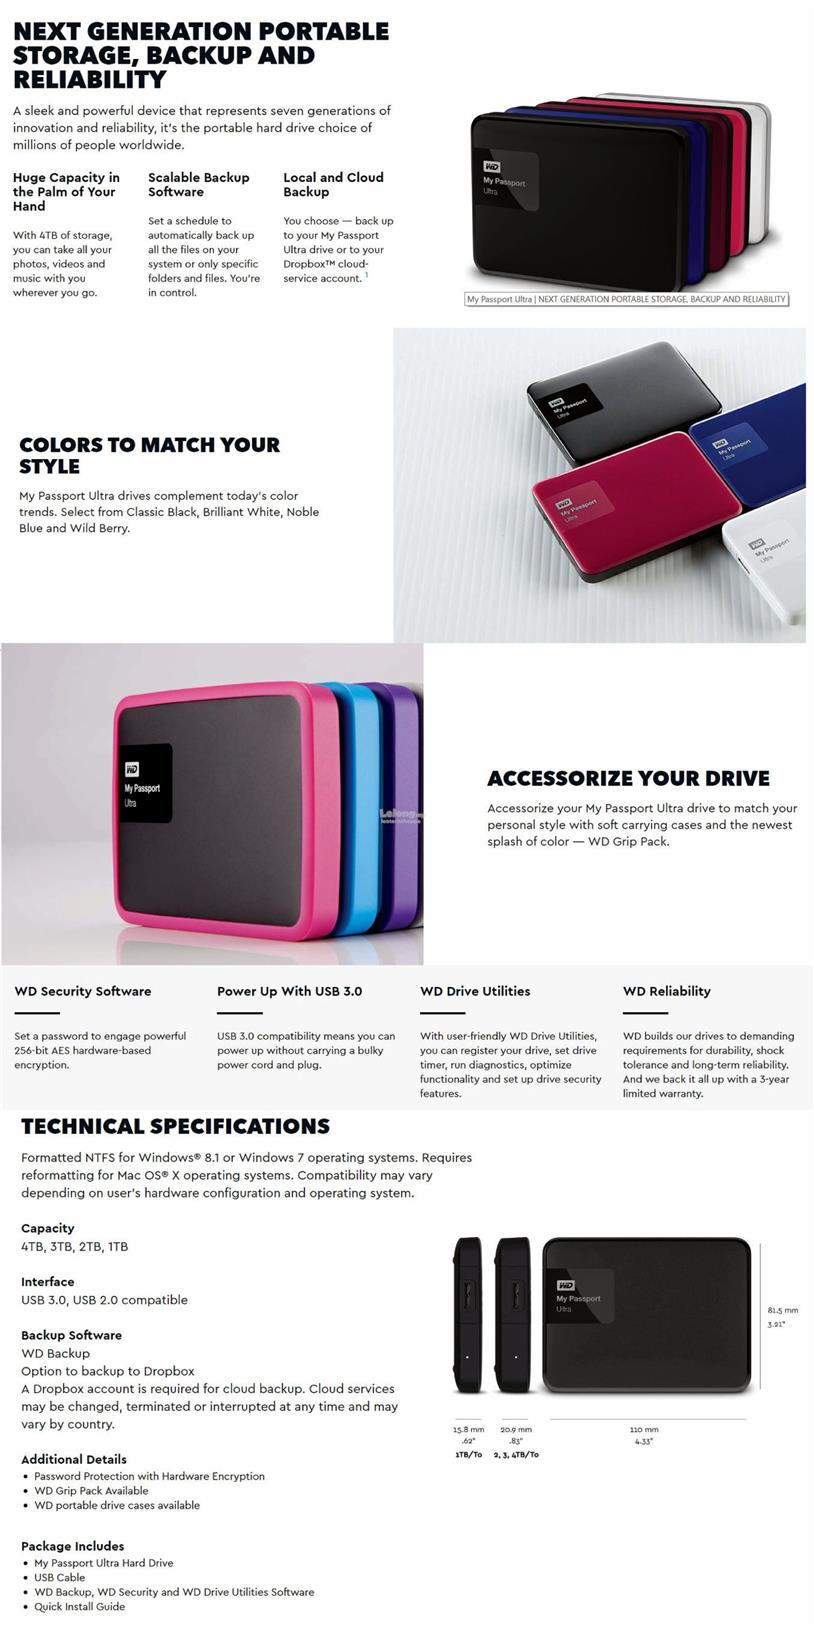 WD MY PASSPORT ULTRA 3TB (ASSORTED COLORS) EXTERNAL PORTABLE HARDDISK